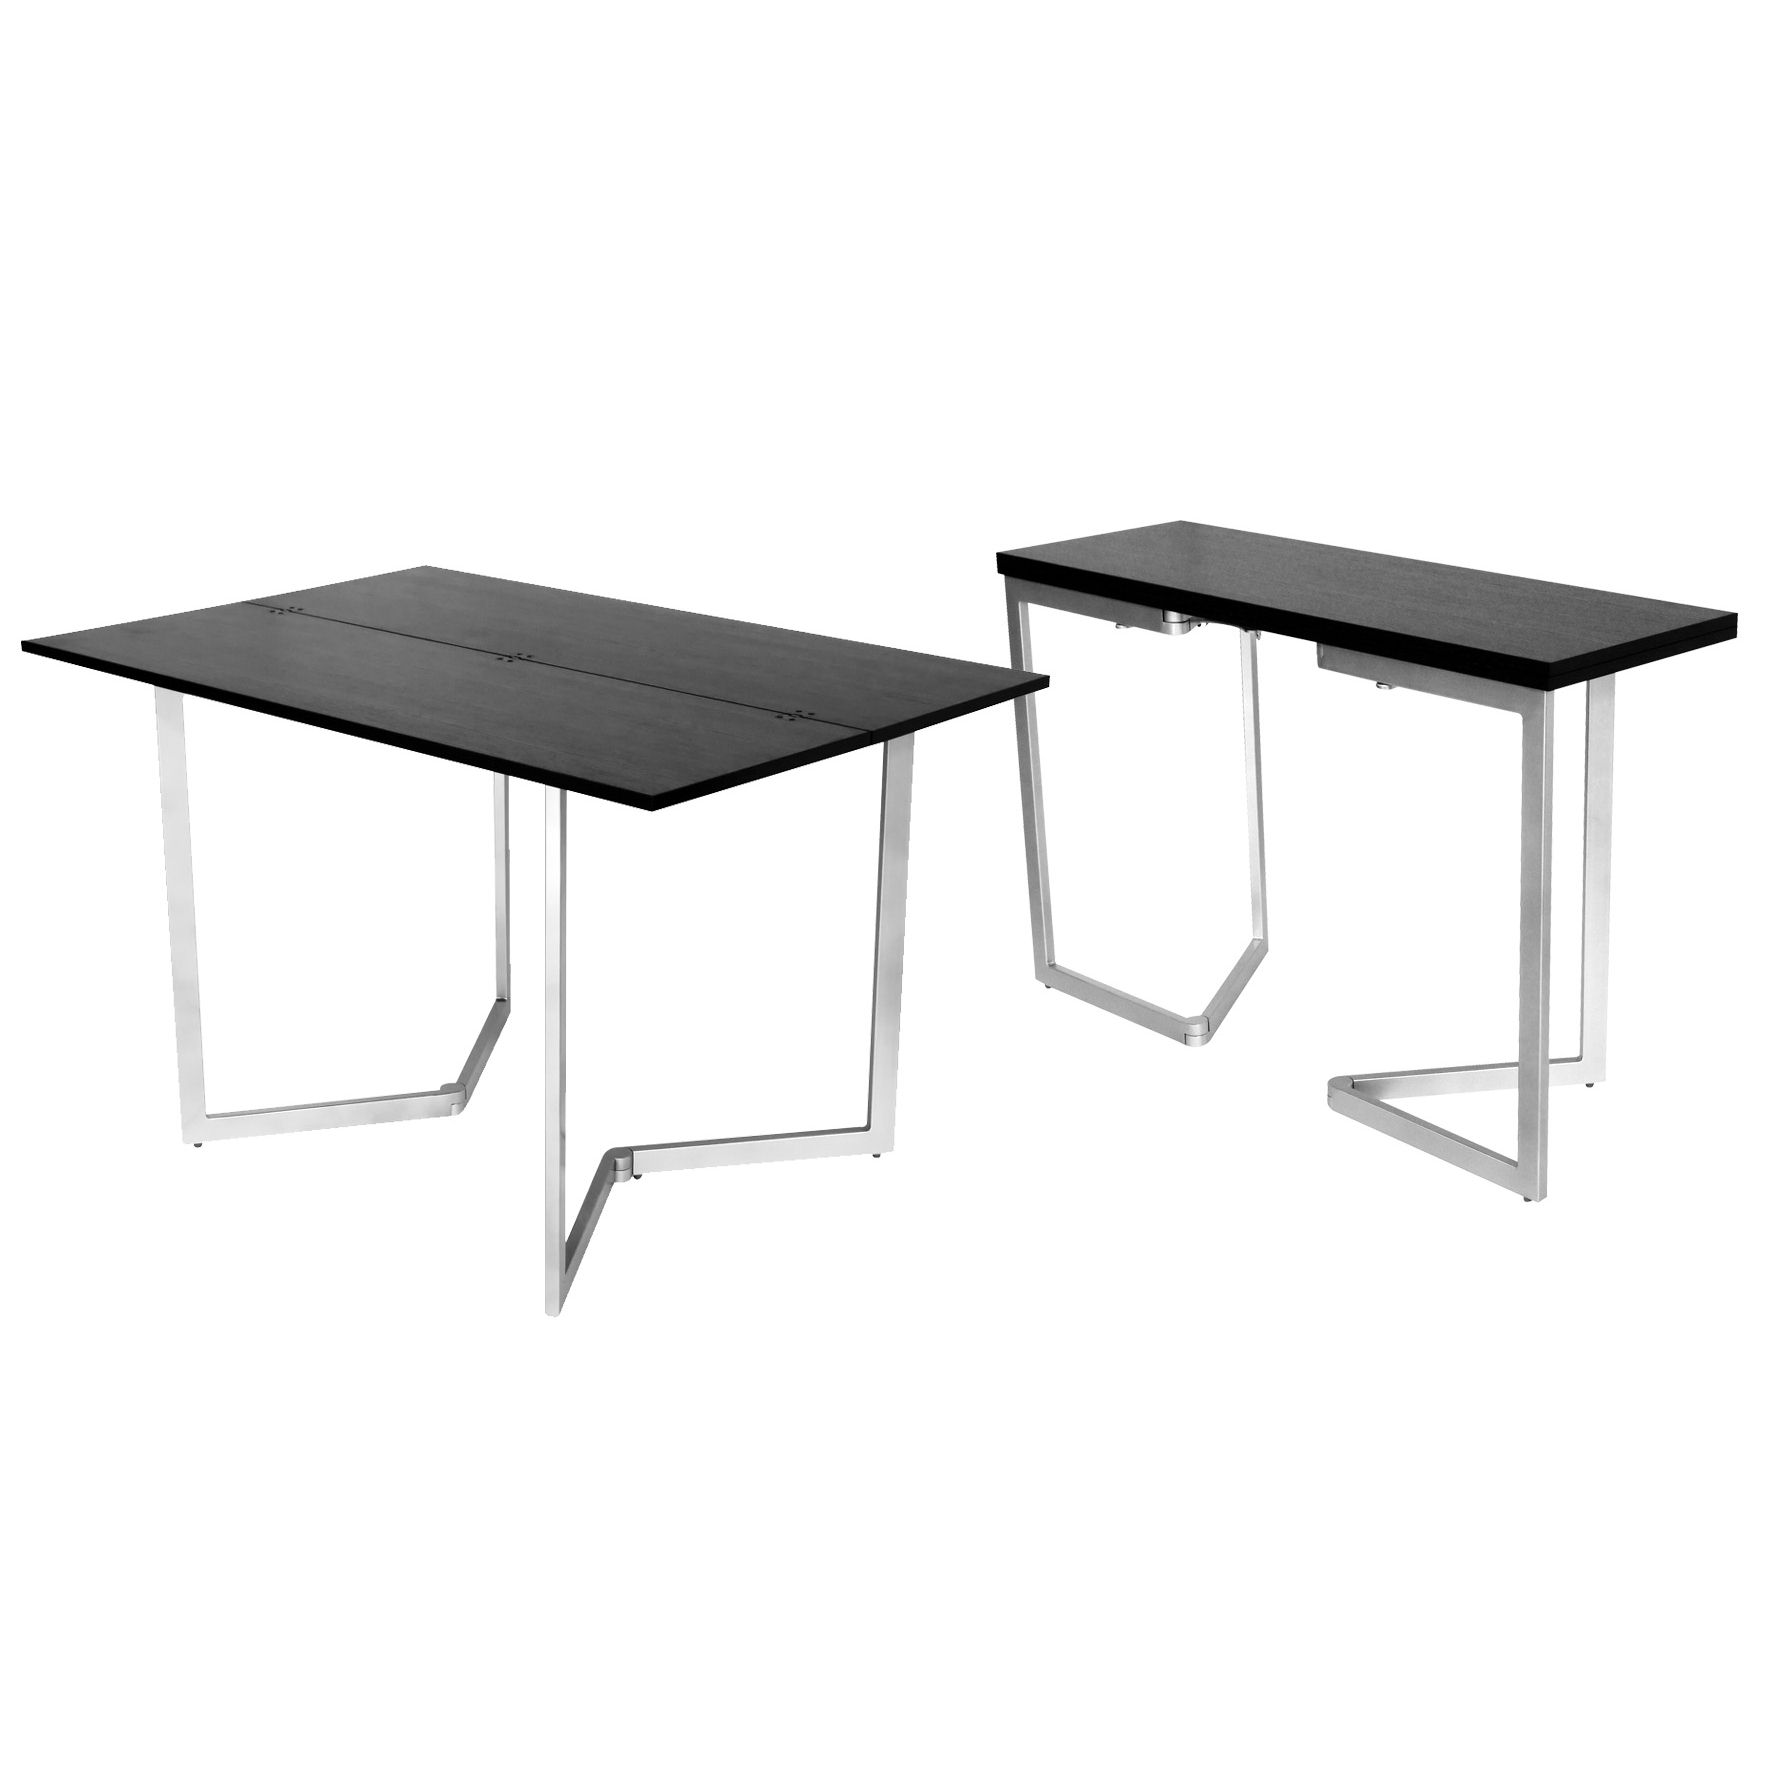 Deco in paris table console extensible wenge talia console talia wenge god - Table extensible pas chere ...